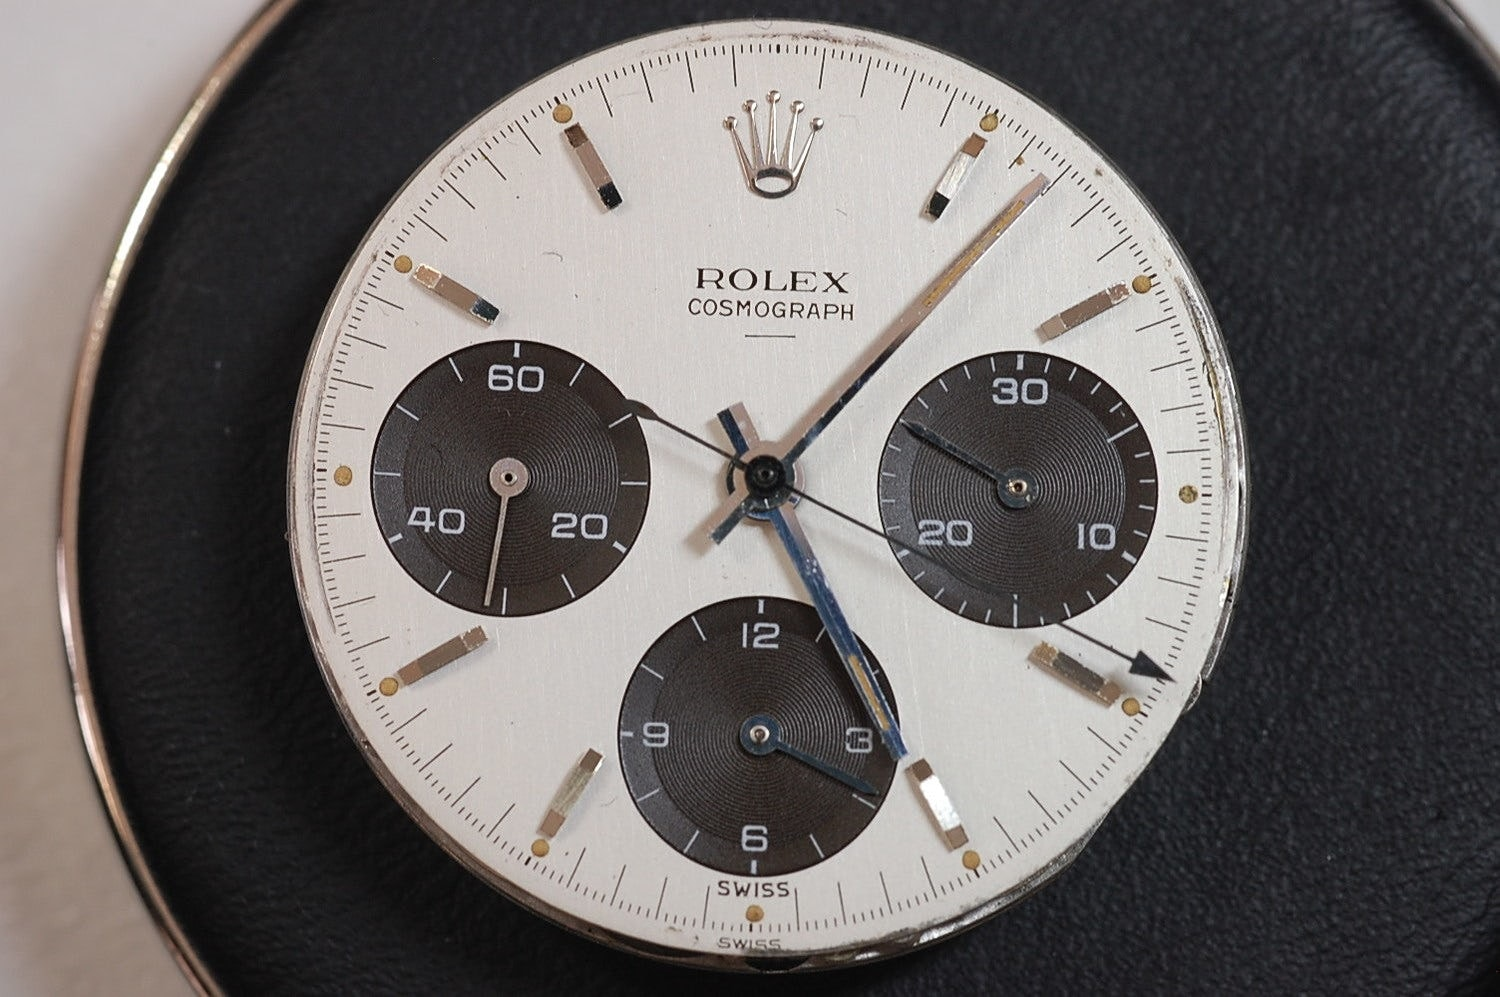 Sunday Rewind: Getting To Know The Very First Rolex Daytona DSC 0004